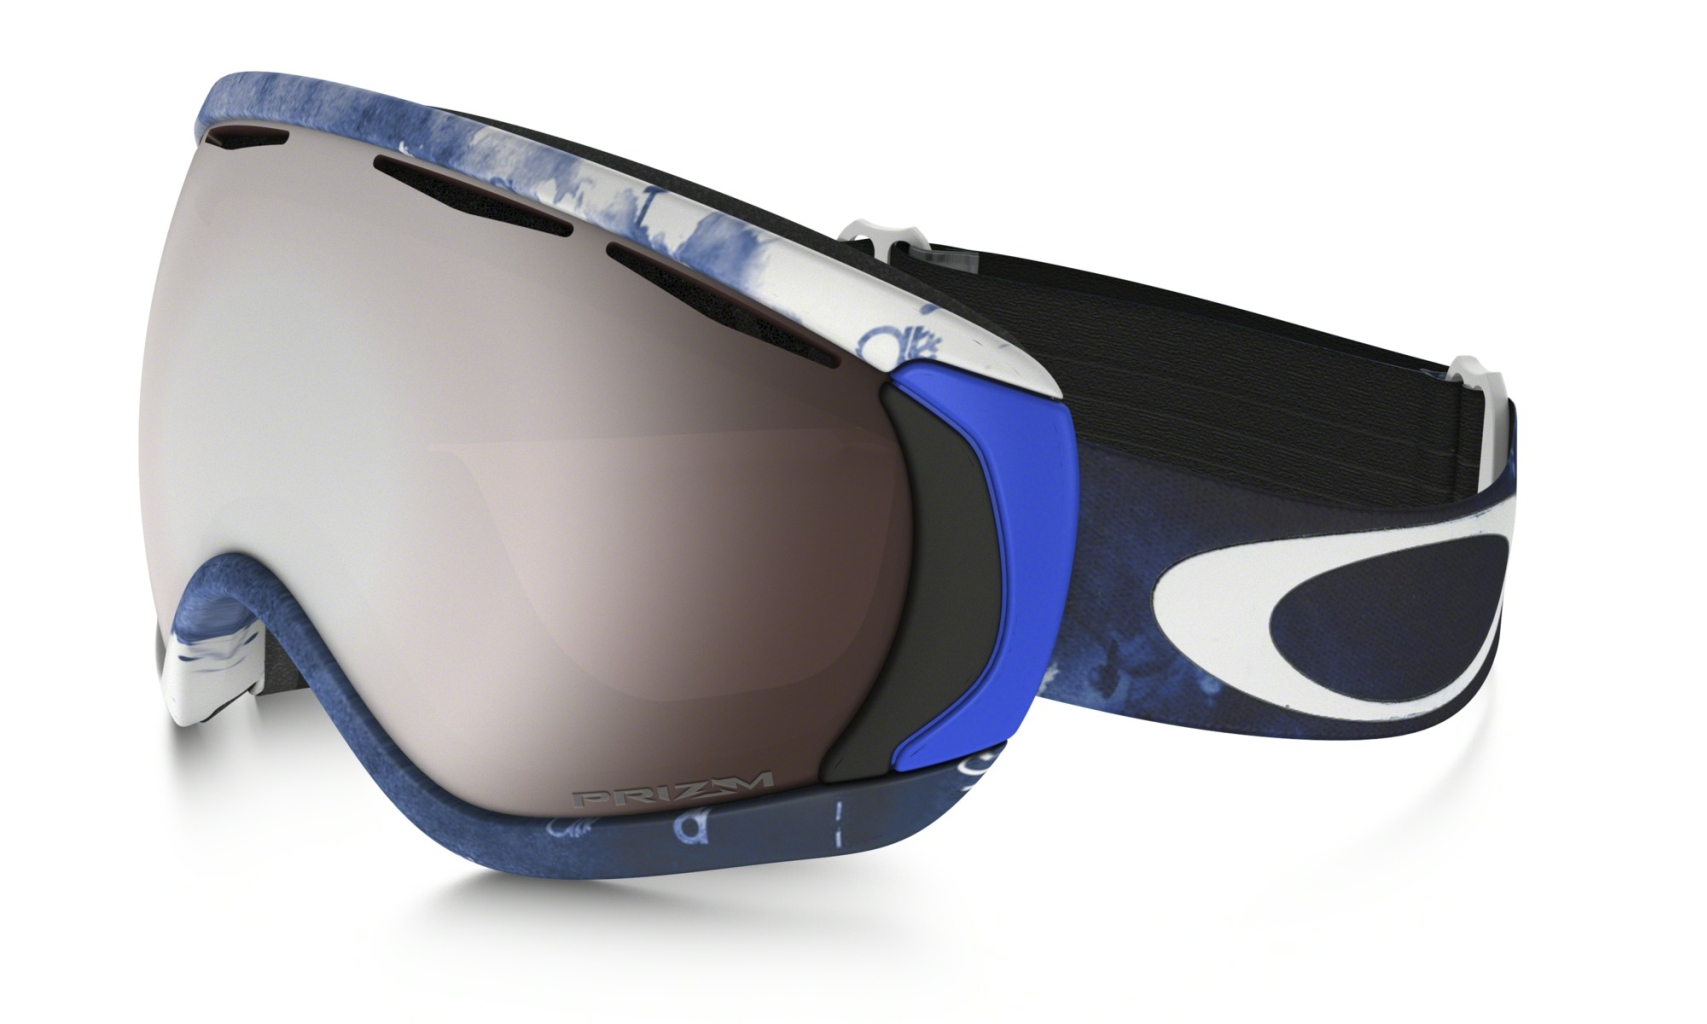 Oakley Canopy JP Auclair CanopySig Whiteout w/Blk-30